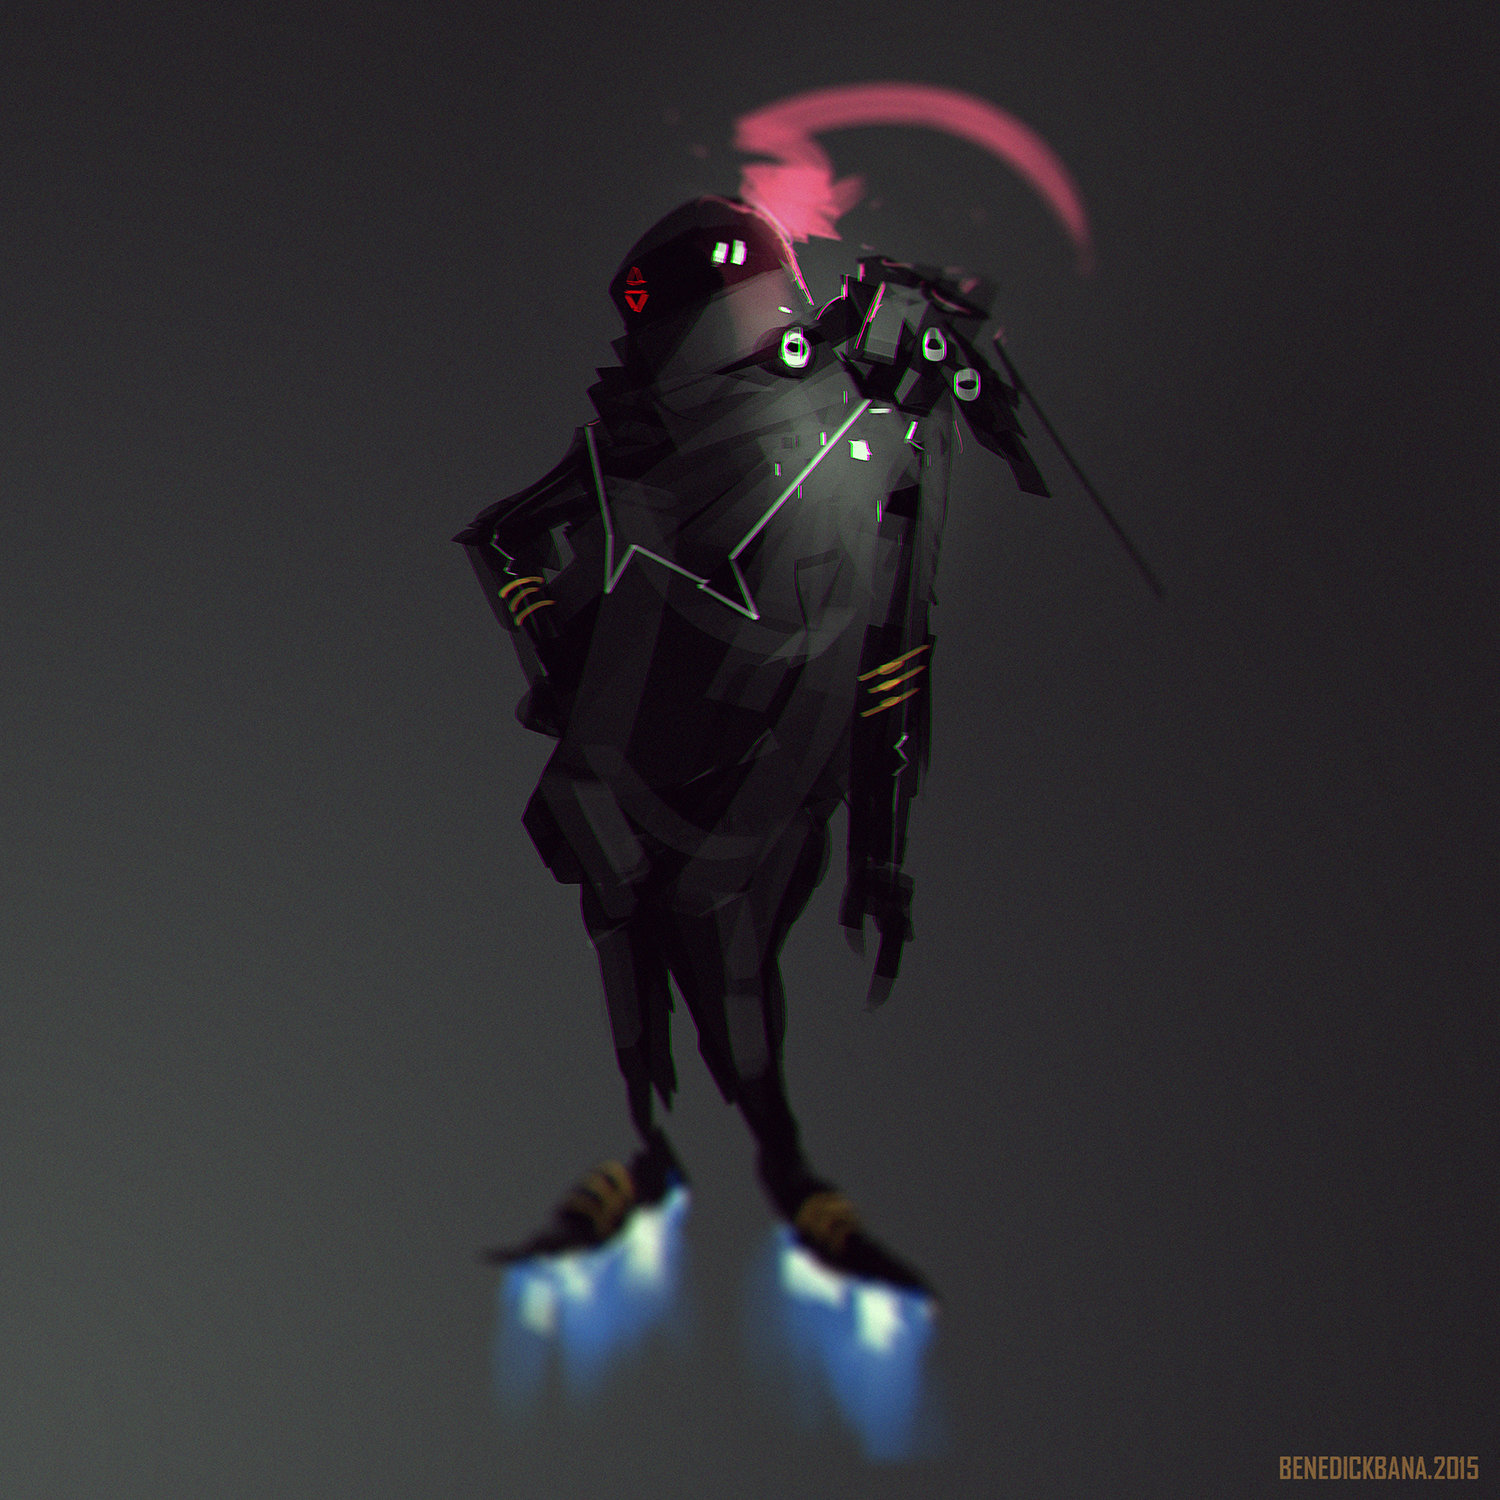 Benedick bana gravity girl